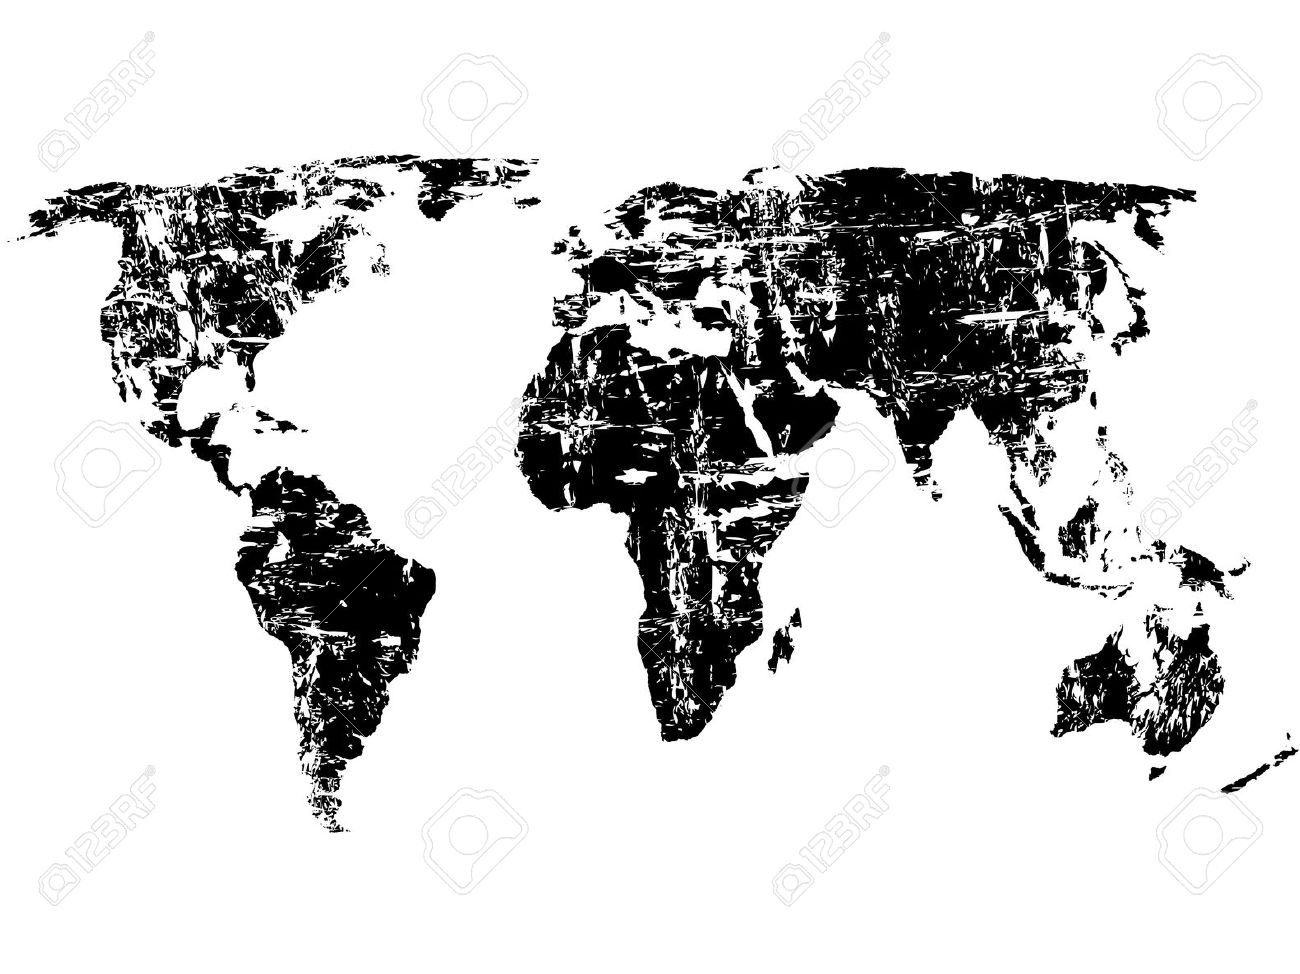 World map high resolution black and white free here world map high resolution black and white gumiabroncs Image collections